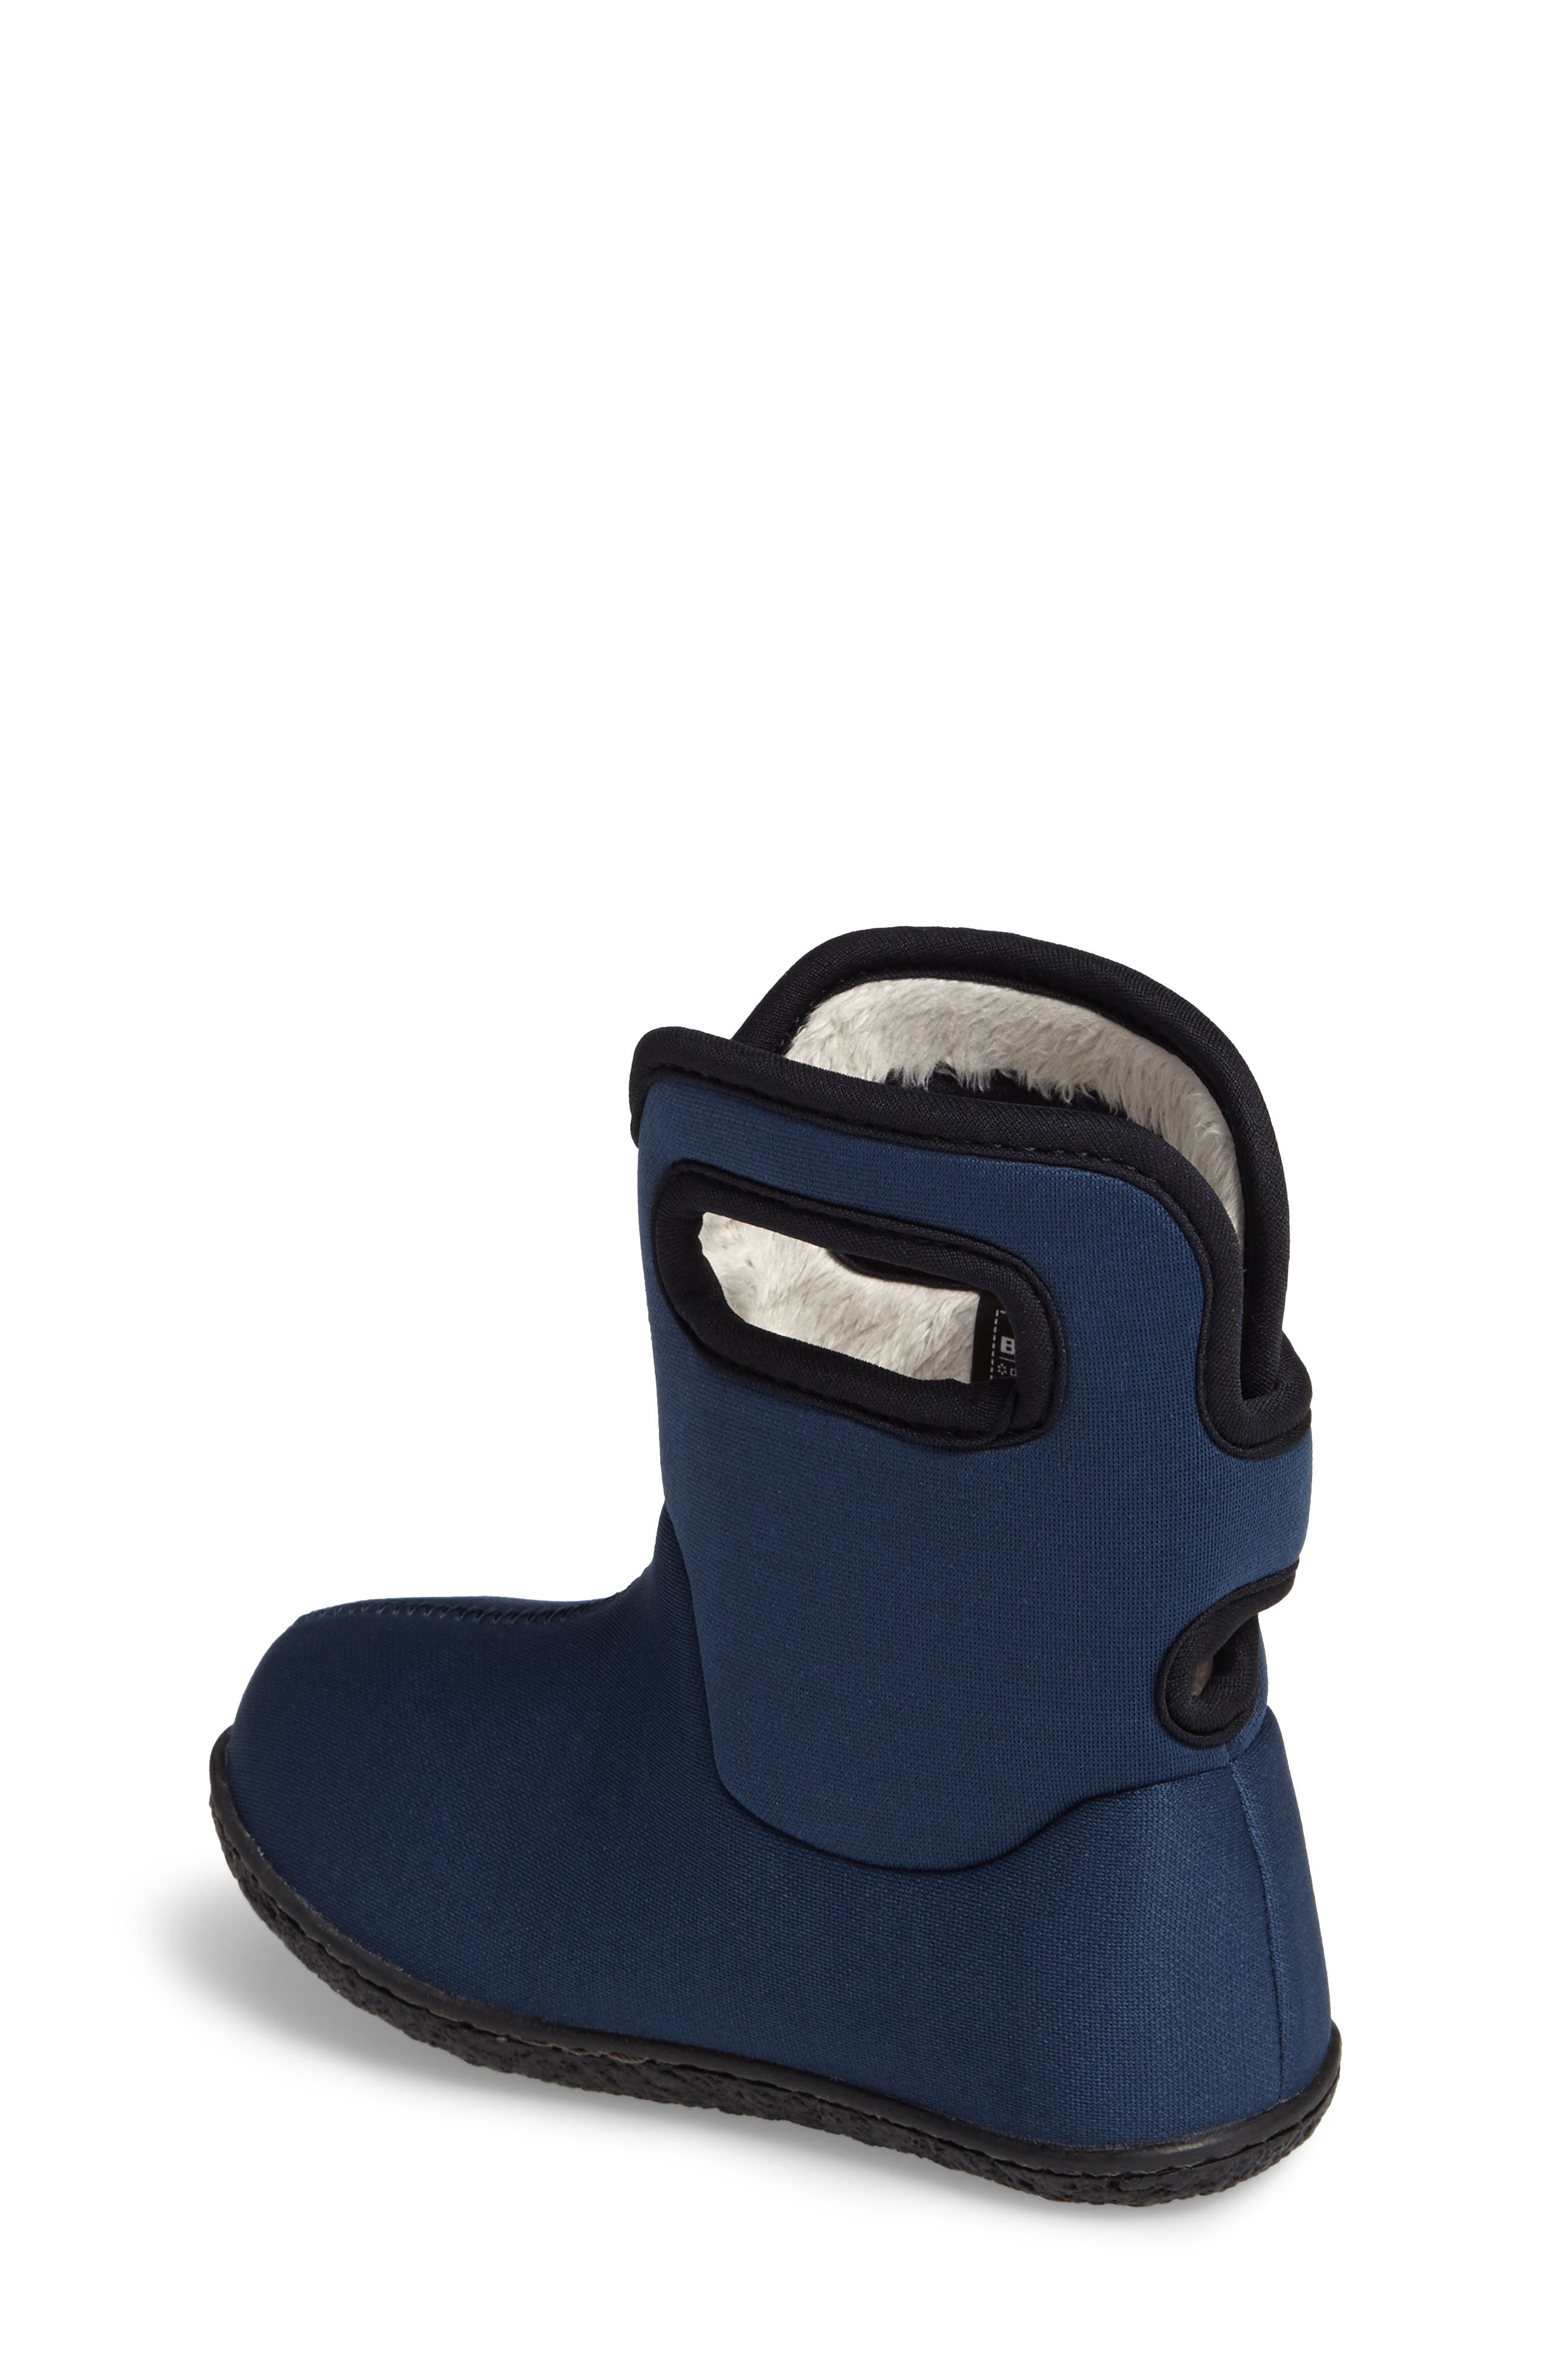 Alternate Image 2  - Bogs Classic Solid Insulated Waterproof Rain Boot (Baby, Walker & Toddler)